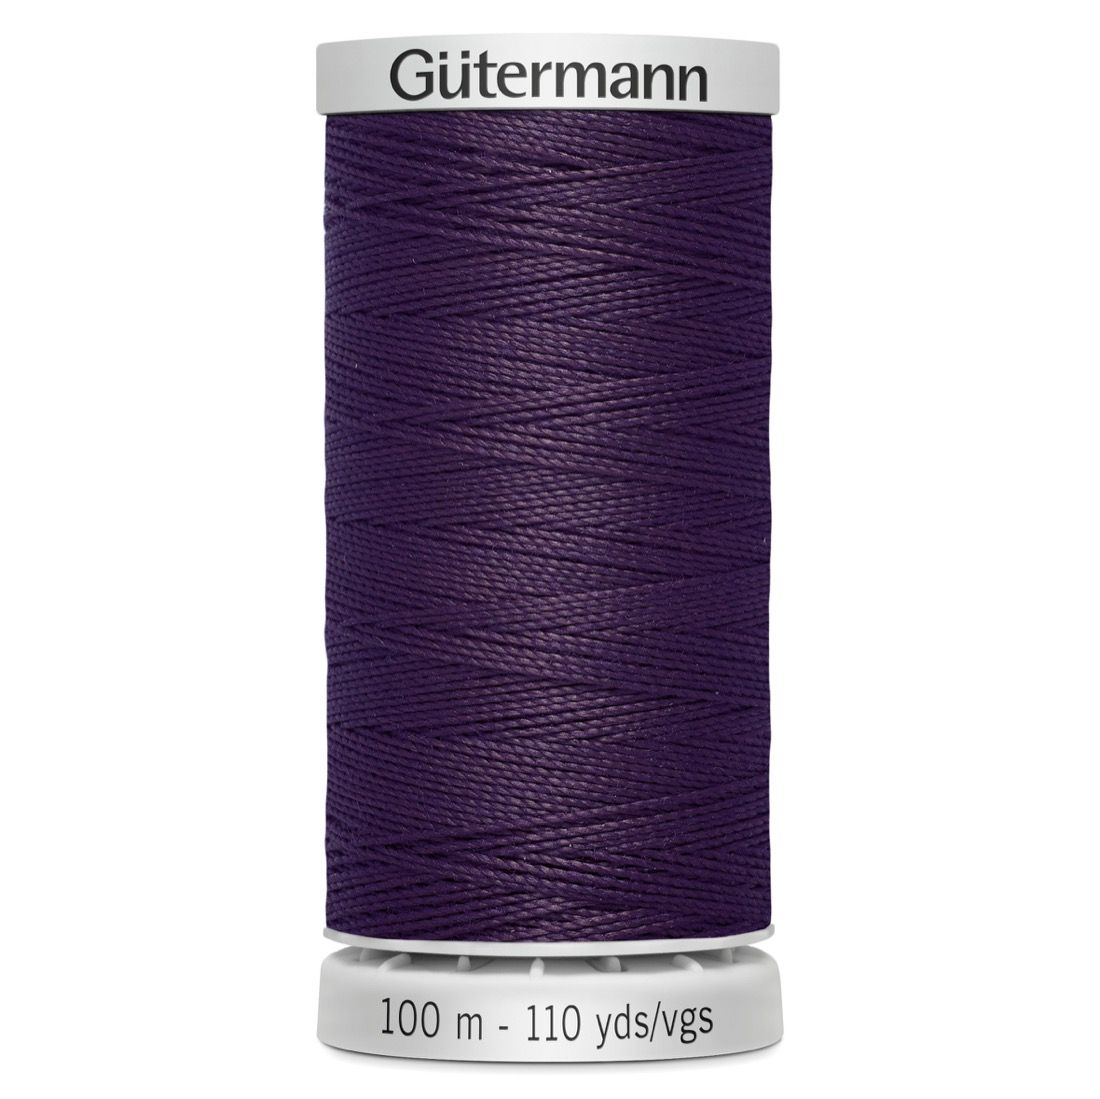 Gutermann Extra Strong Upholstery Thread - 100m - 512